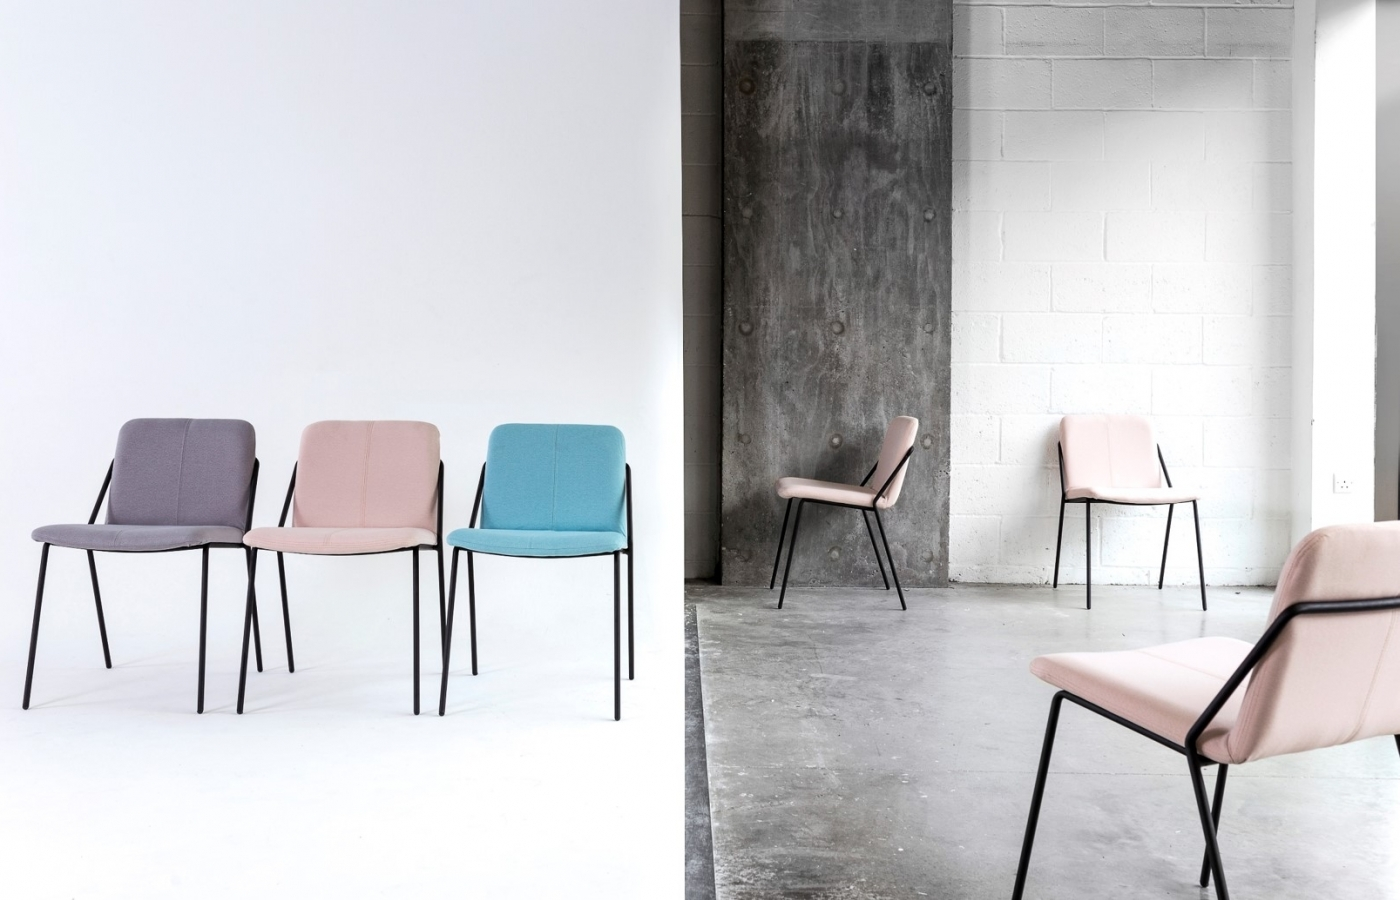 Terrific Sling Side Chair Products Workstories Download Free Architecture Designs Rallybritishbridgeorg